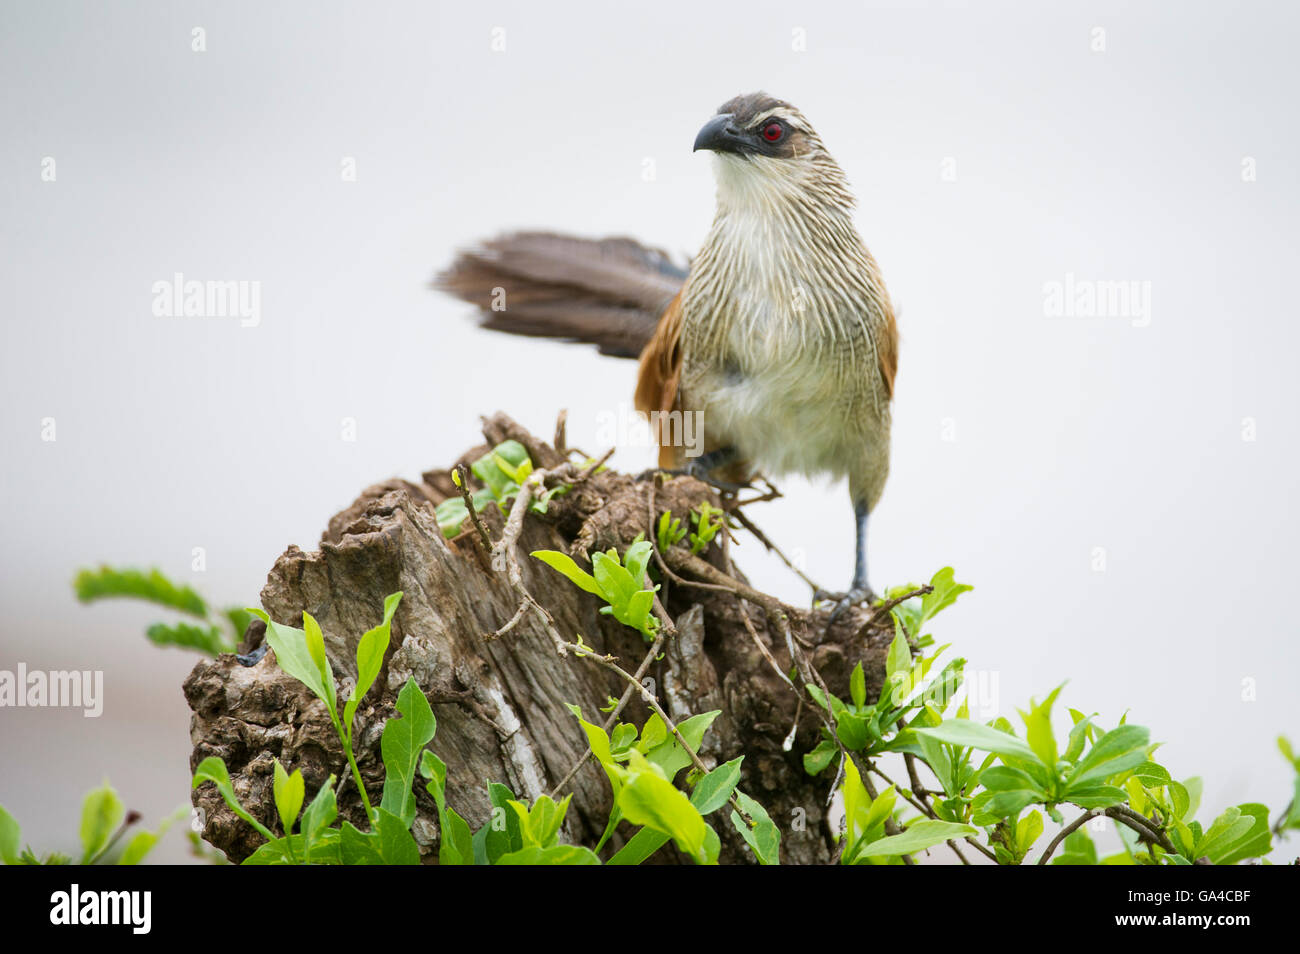 White-browed coucal (Centropus superciliosus), Tarangire National Park, Tanzania - Stock Image